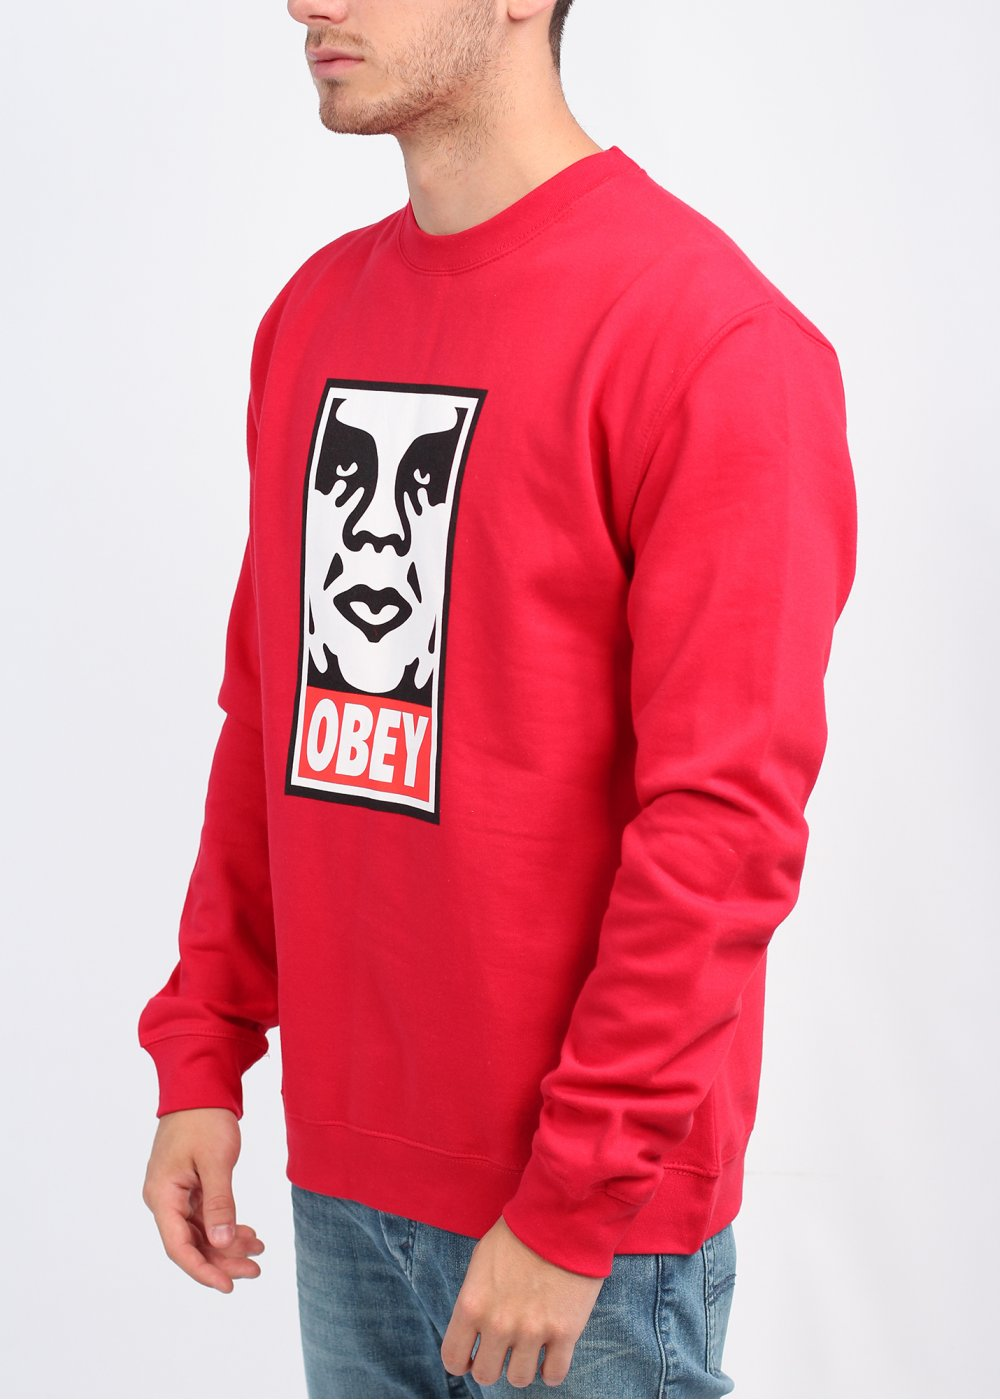 Obey OG Face Crew Sweater - Red - Obey from Triads UK